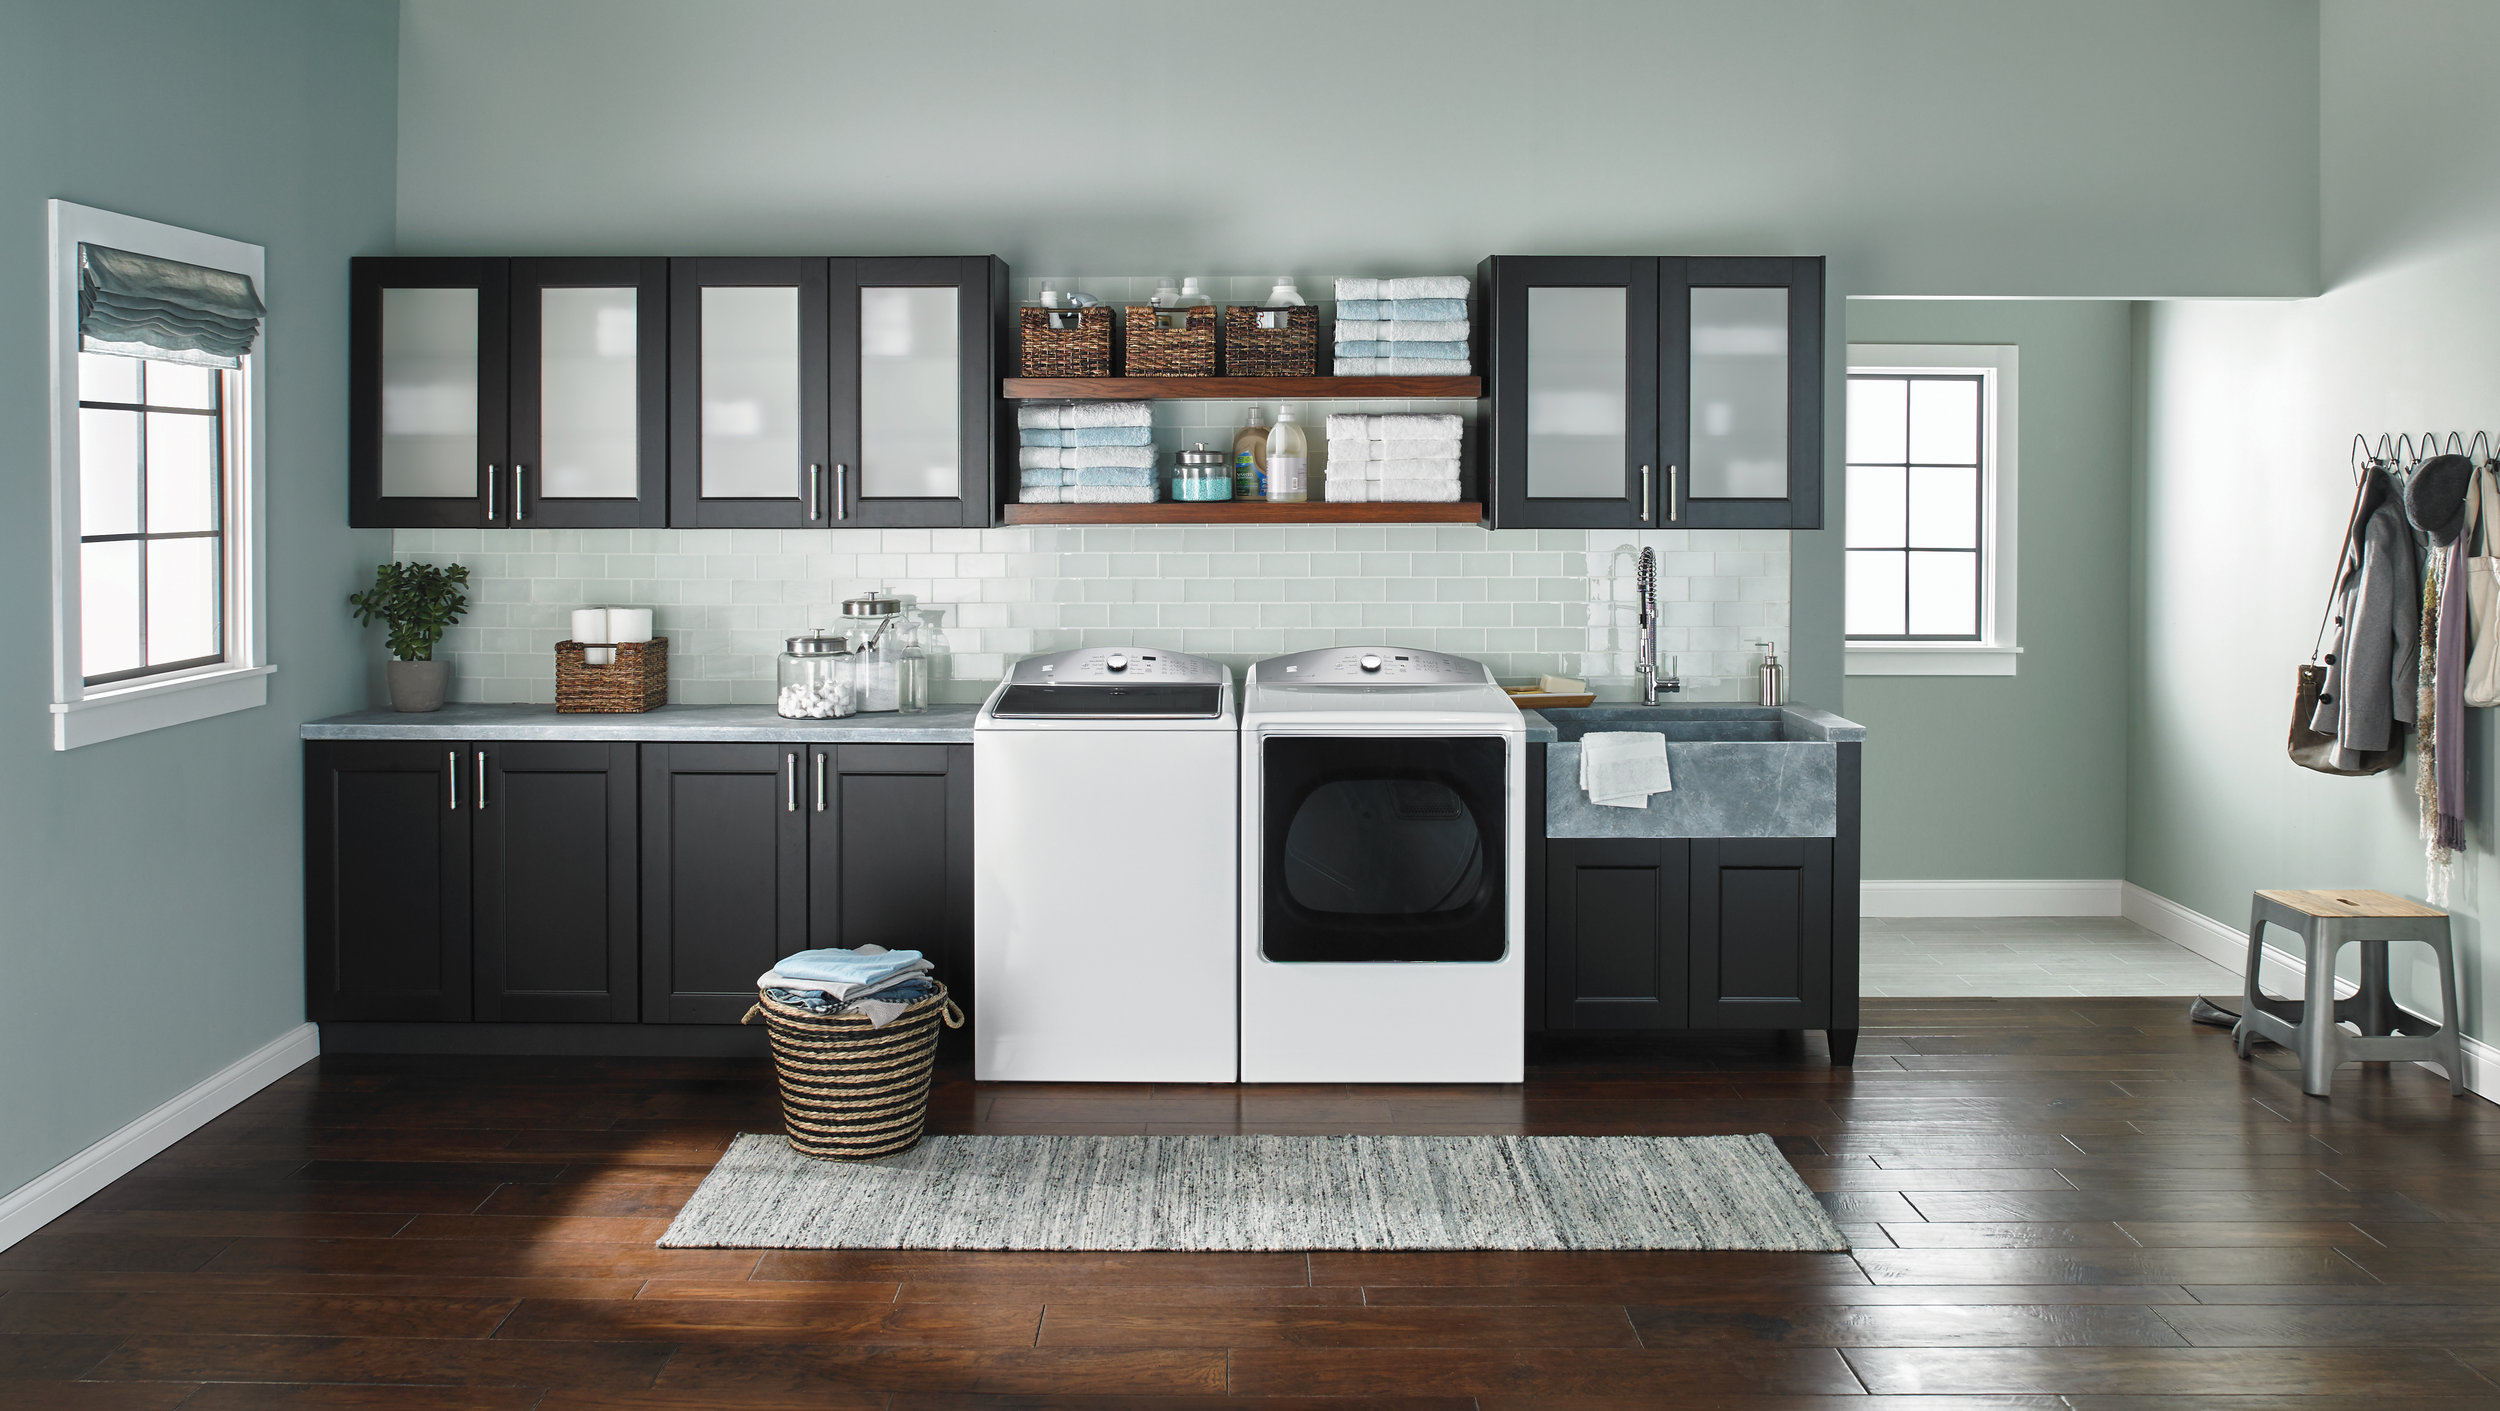 Appliances like this high-efficiency top load washer and SmartDry dryer by Kenmore can make laundry a breeze. $749 each;  kenmore.com. Courtesy of Whirlpool Corporation.